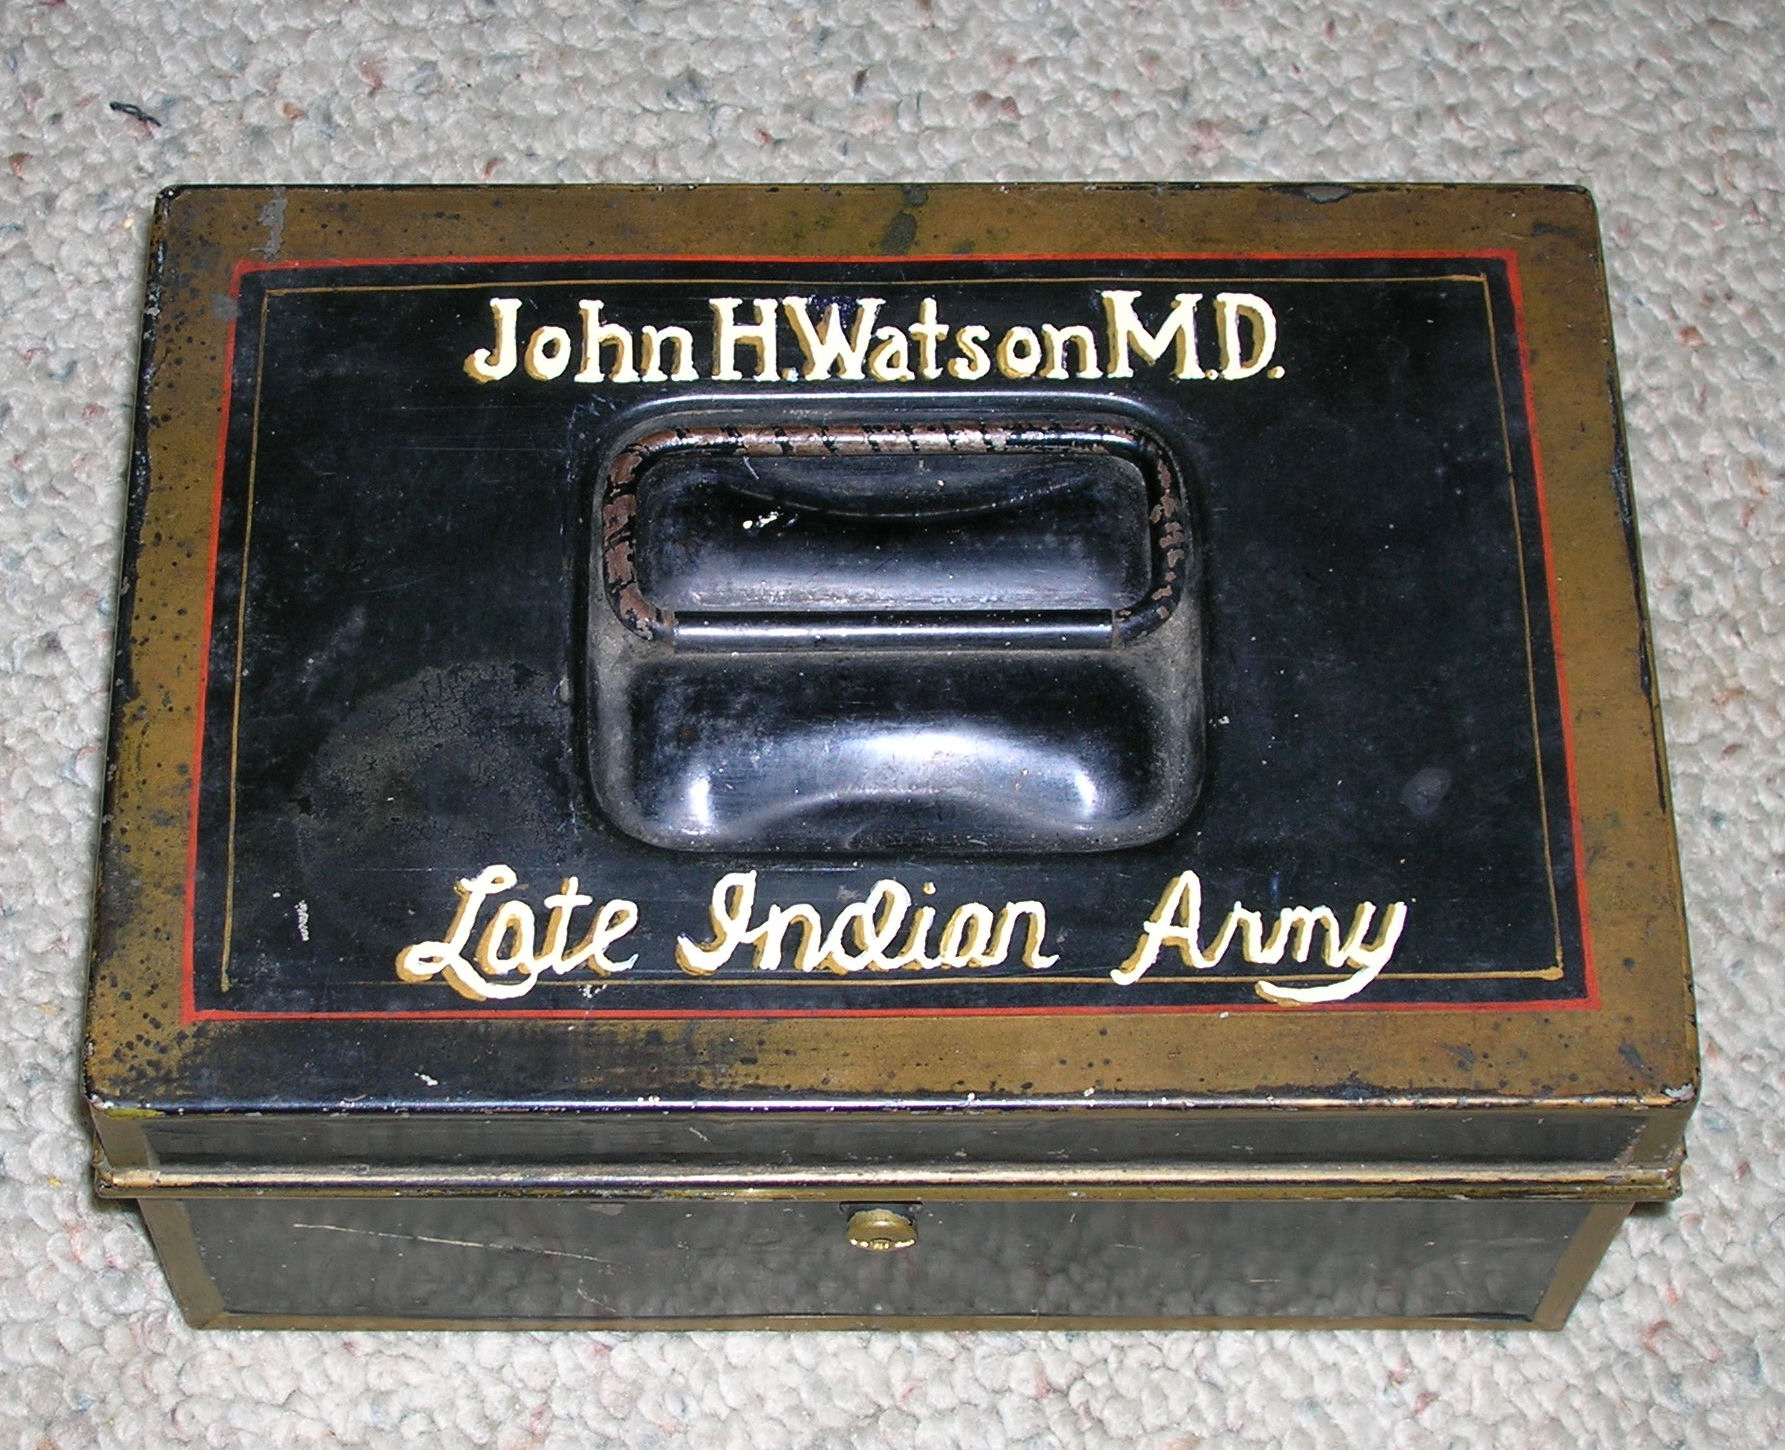 From Watson's Tin Box: A Case of Identity